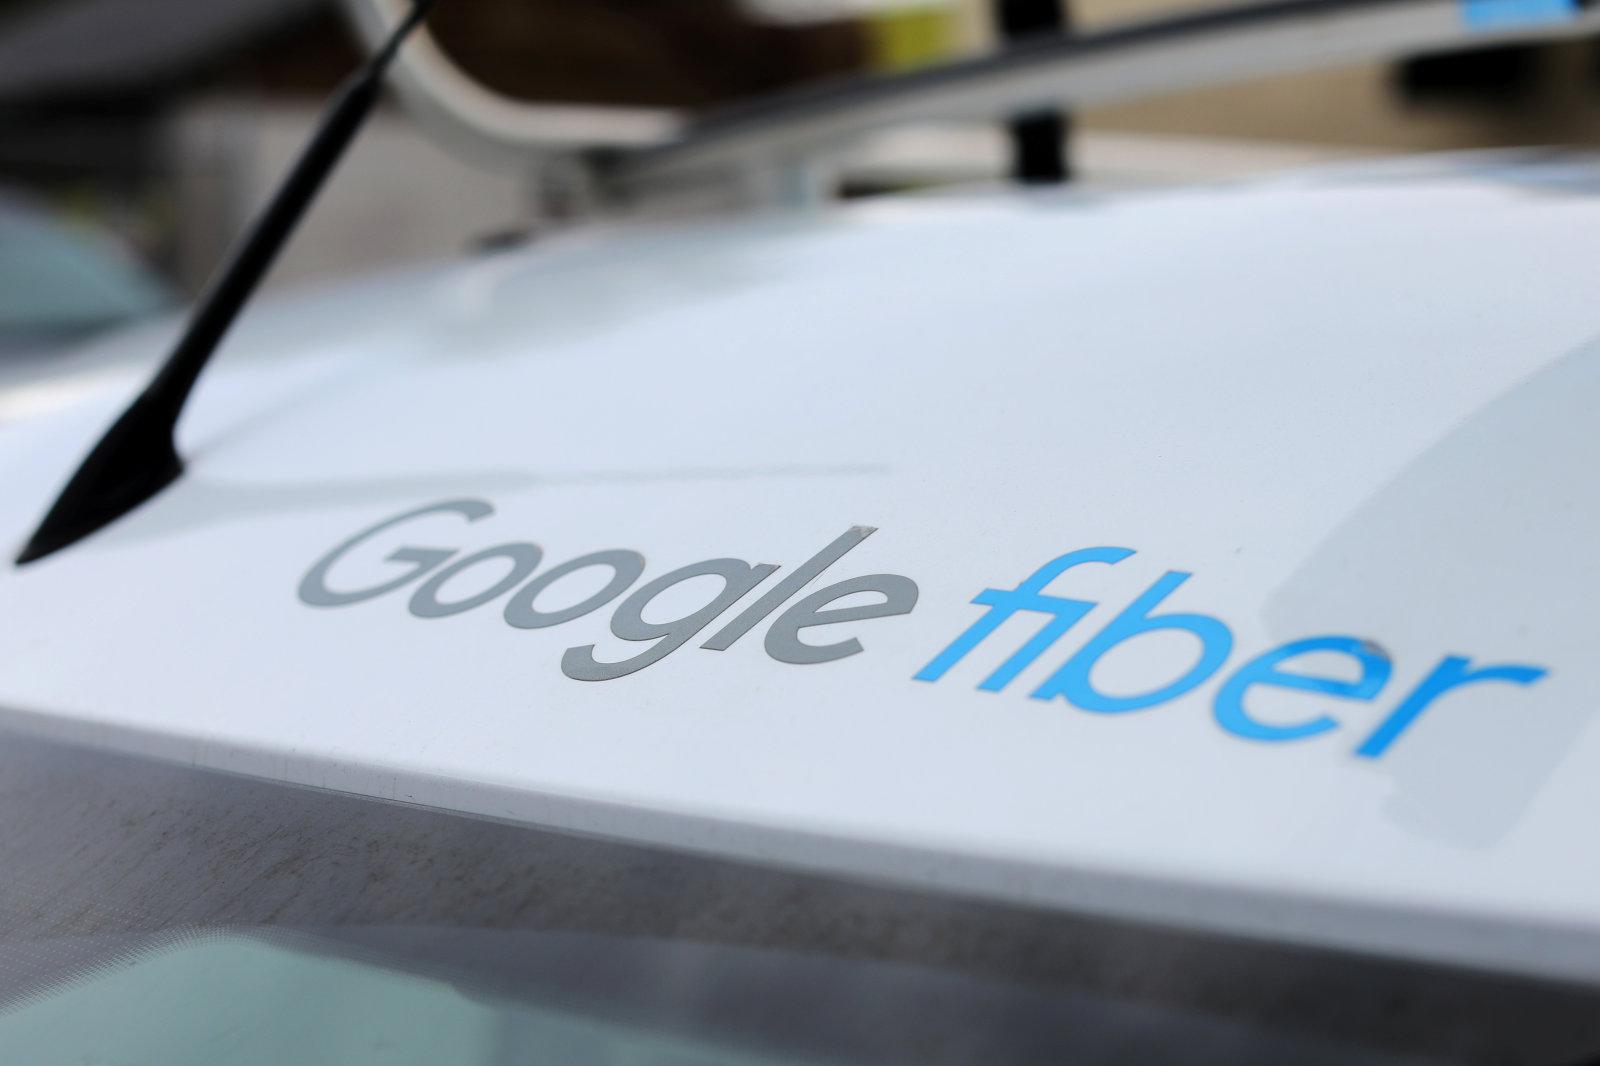 Google Fiber is taking the leap toward 2Gbps speeds at a triple-digit cost